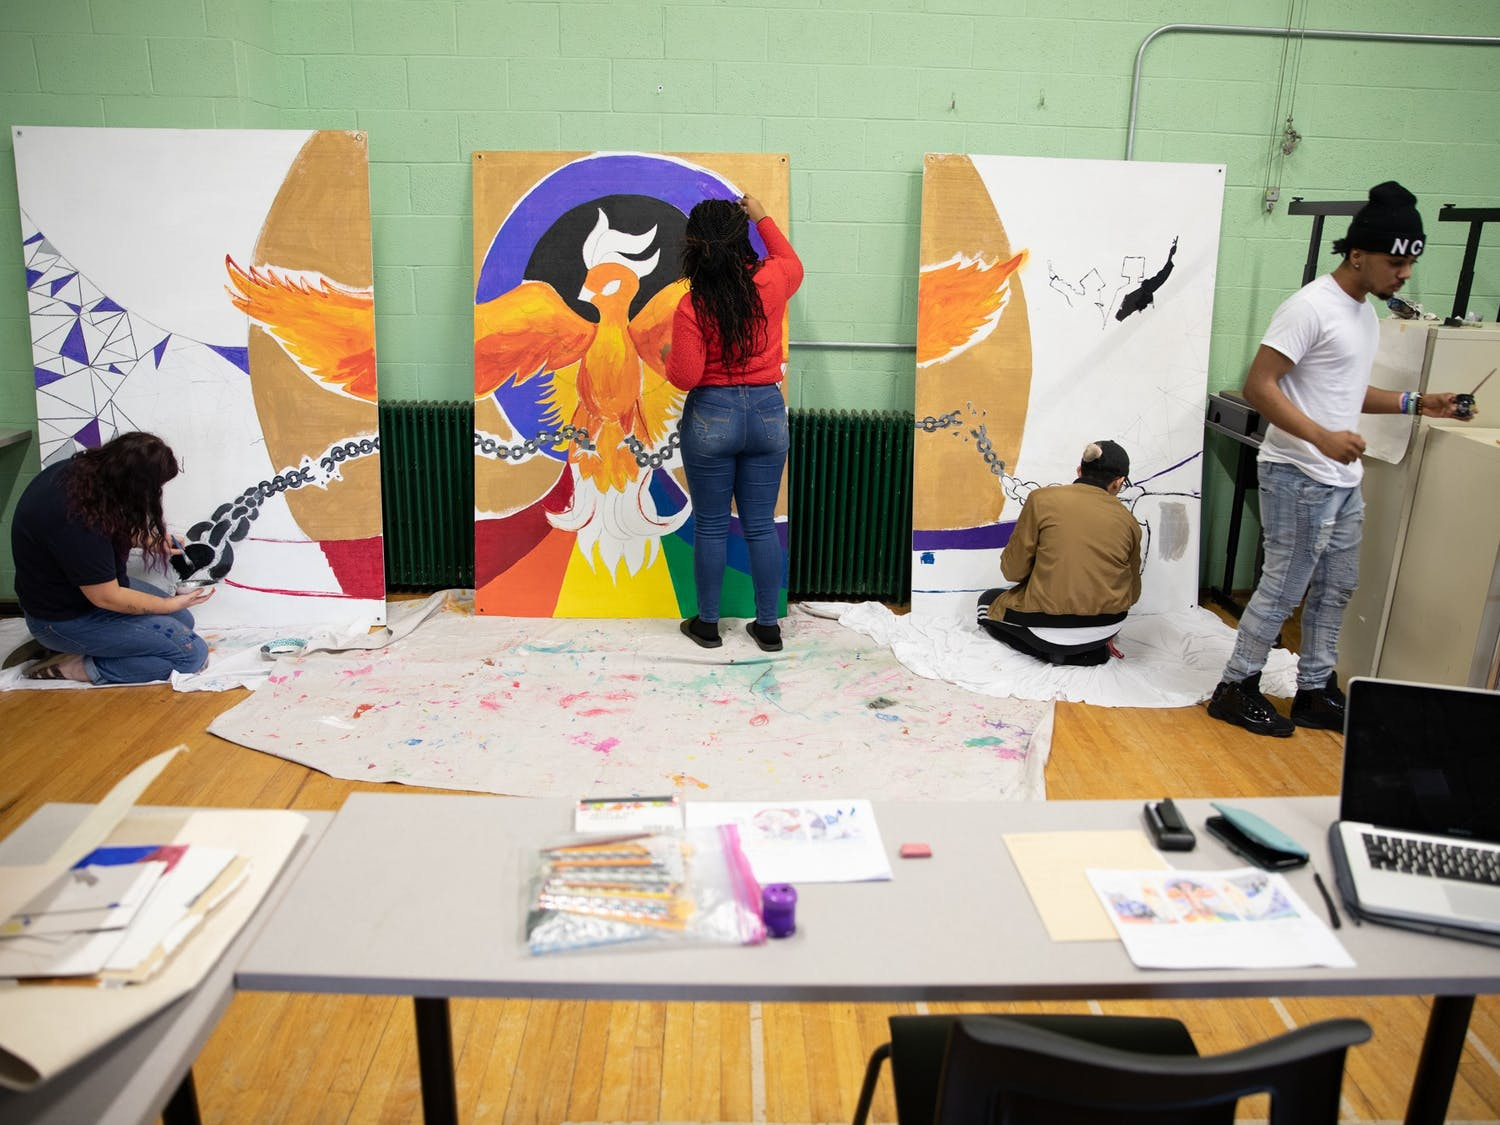 """(From left) Jenna Vaccarelli, Solea Merritt, Dakota Pesta and Stanley Rhodes work on Phoenix Academy's portion of a mural in the gymnasium on Thursday, Jan. 16, 2020, to be hung in the adjacent Lincoln Center. The Academy, the district's alternative school, prides itself on pushing students """"to learn, to succeed, and to lead."""""""